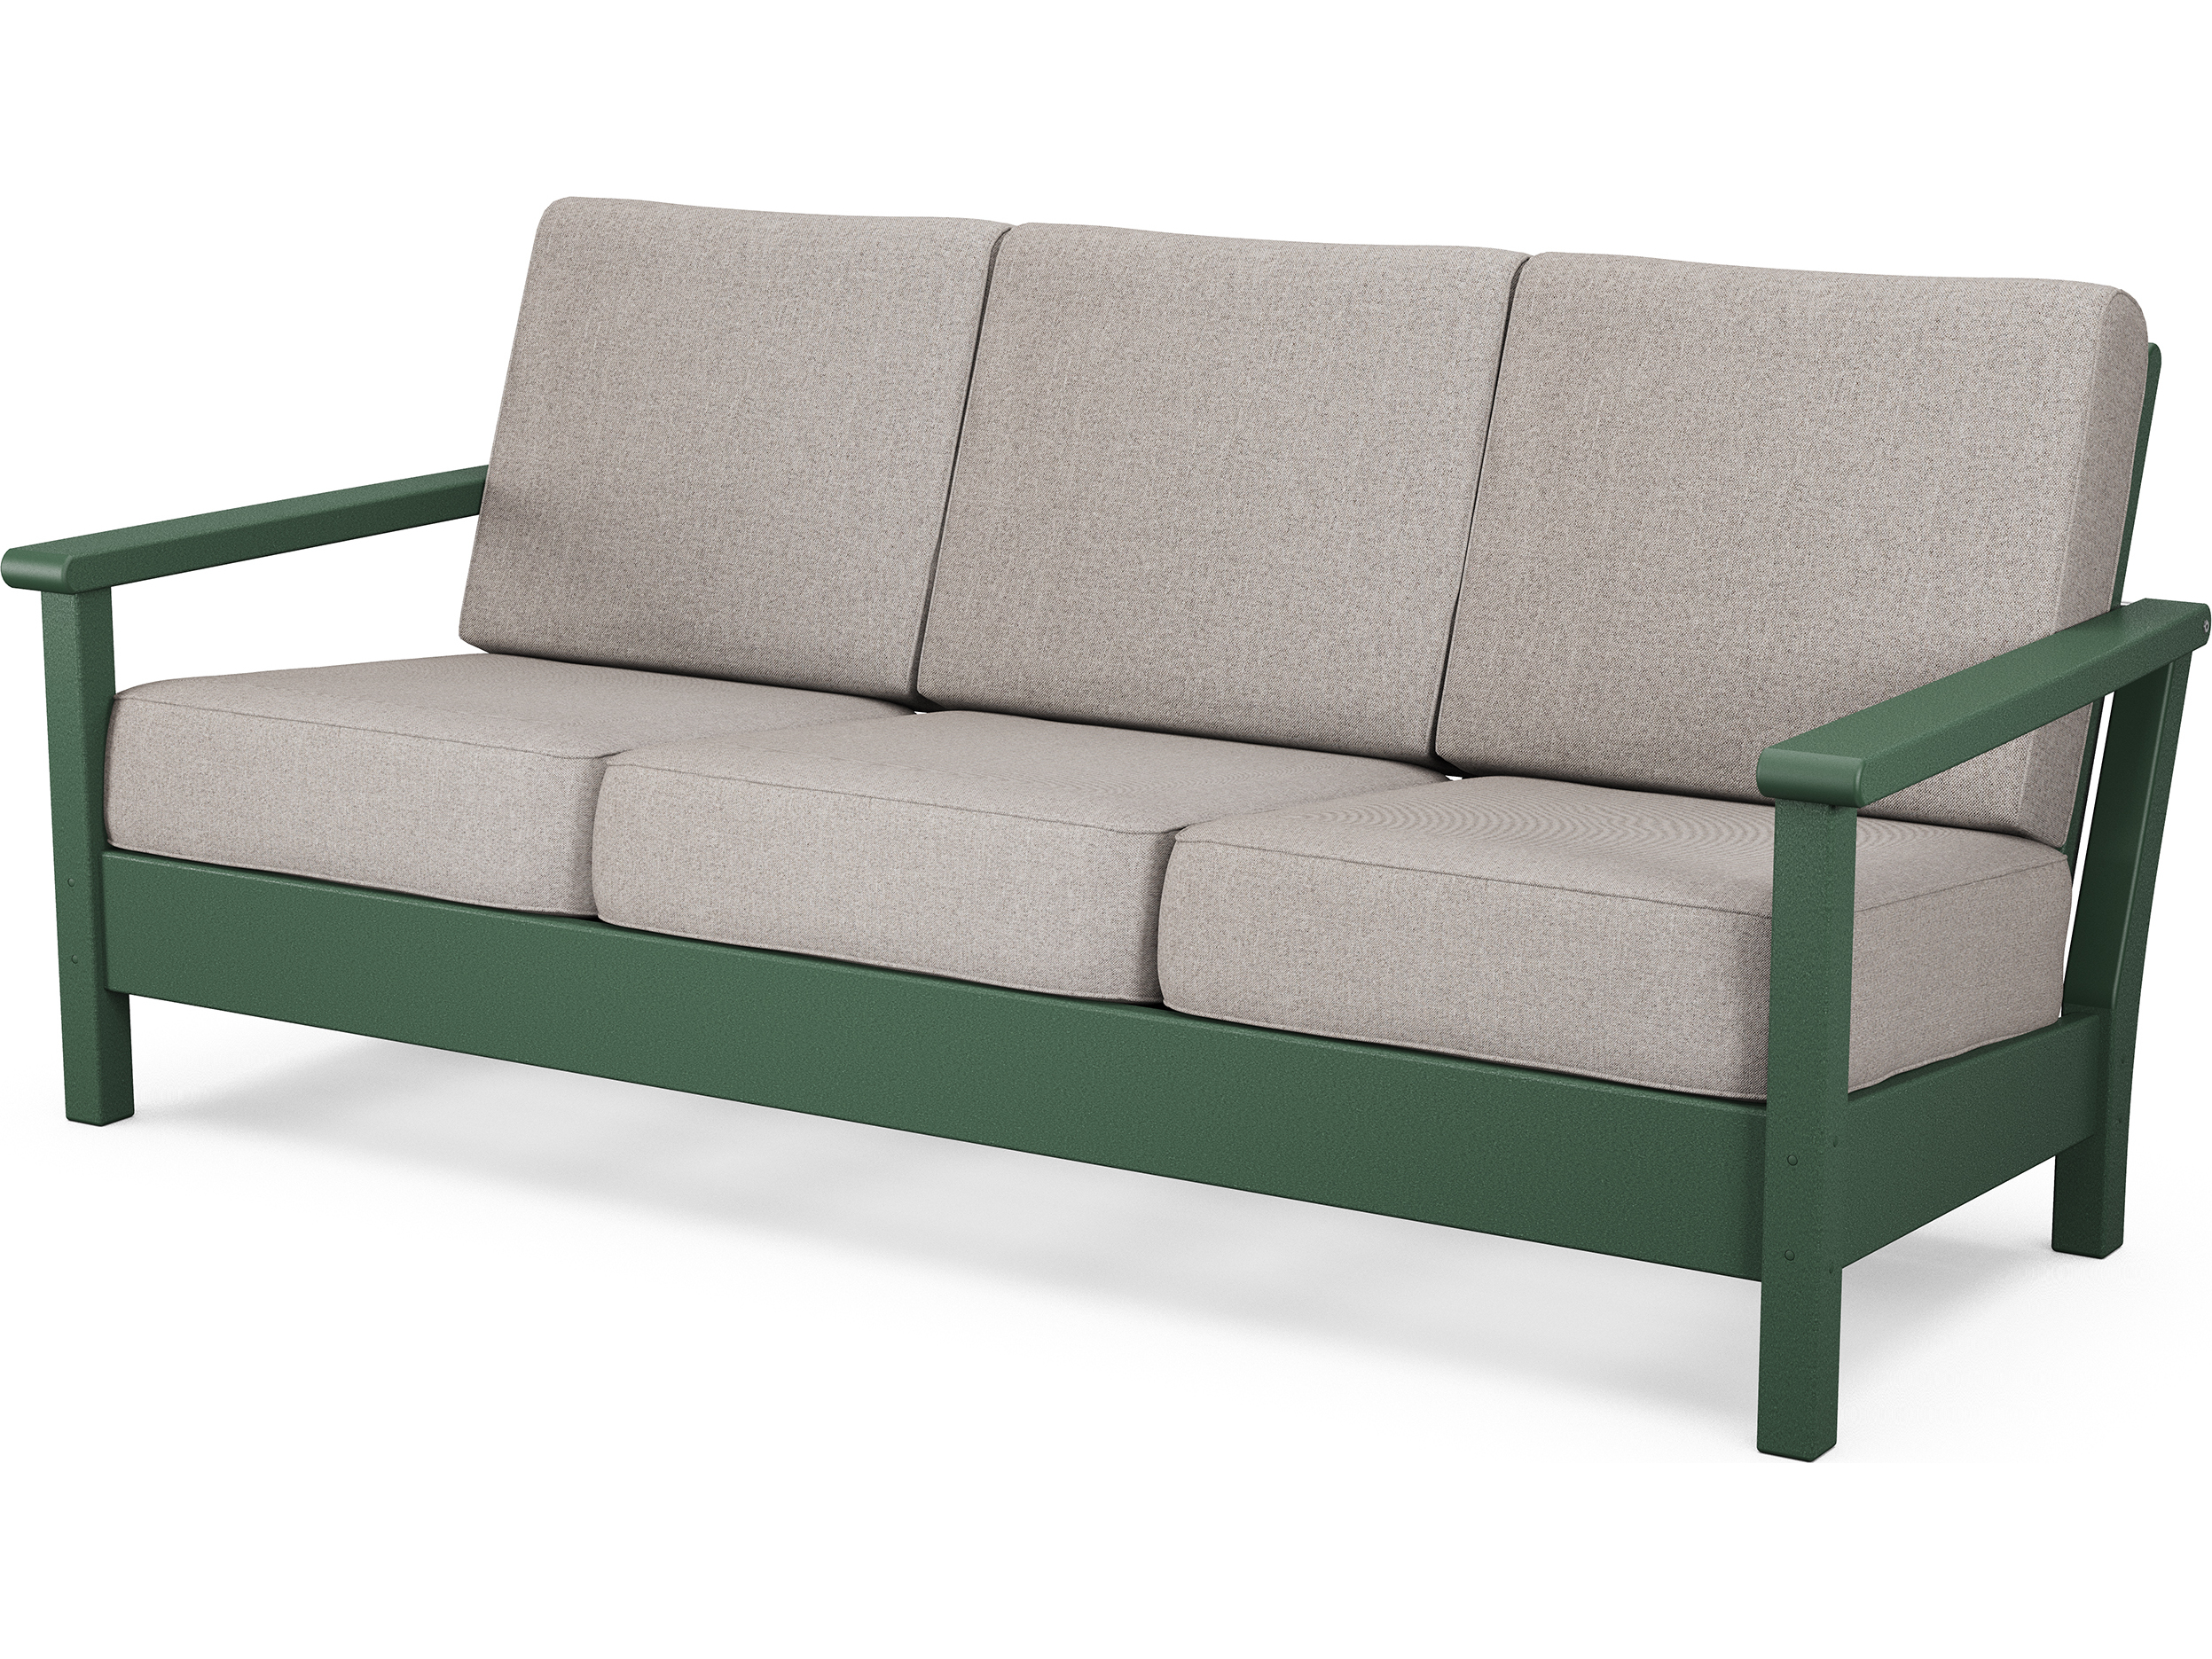 Polywood harbour recycled plastic deep seating sofa 4013 for Sofa exterior pvc